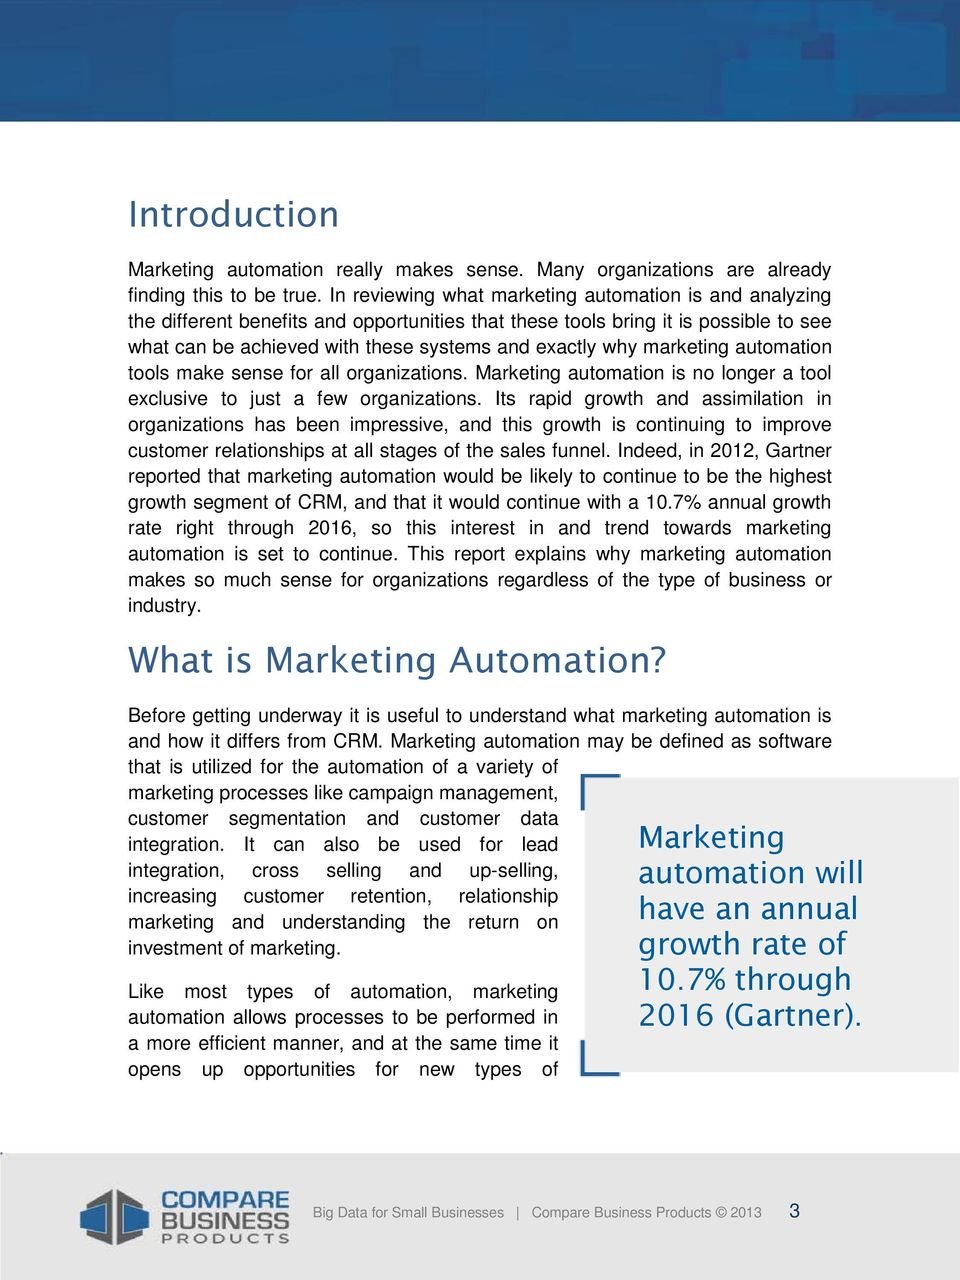 marketing automation tools make sense for all organizations. Marketing automation is no longer a tool exclusive to just a few organizations.